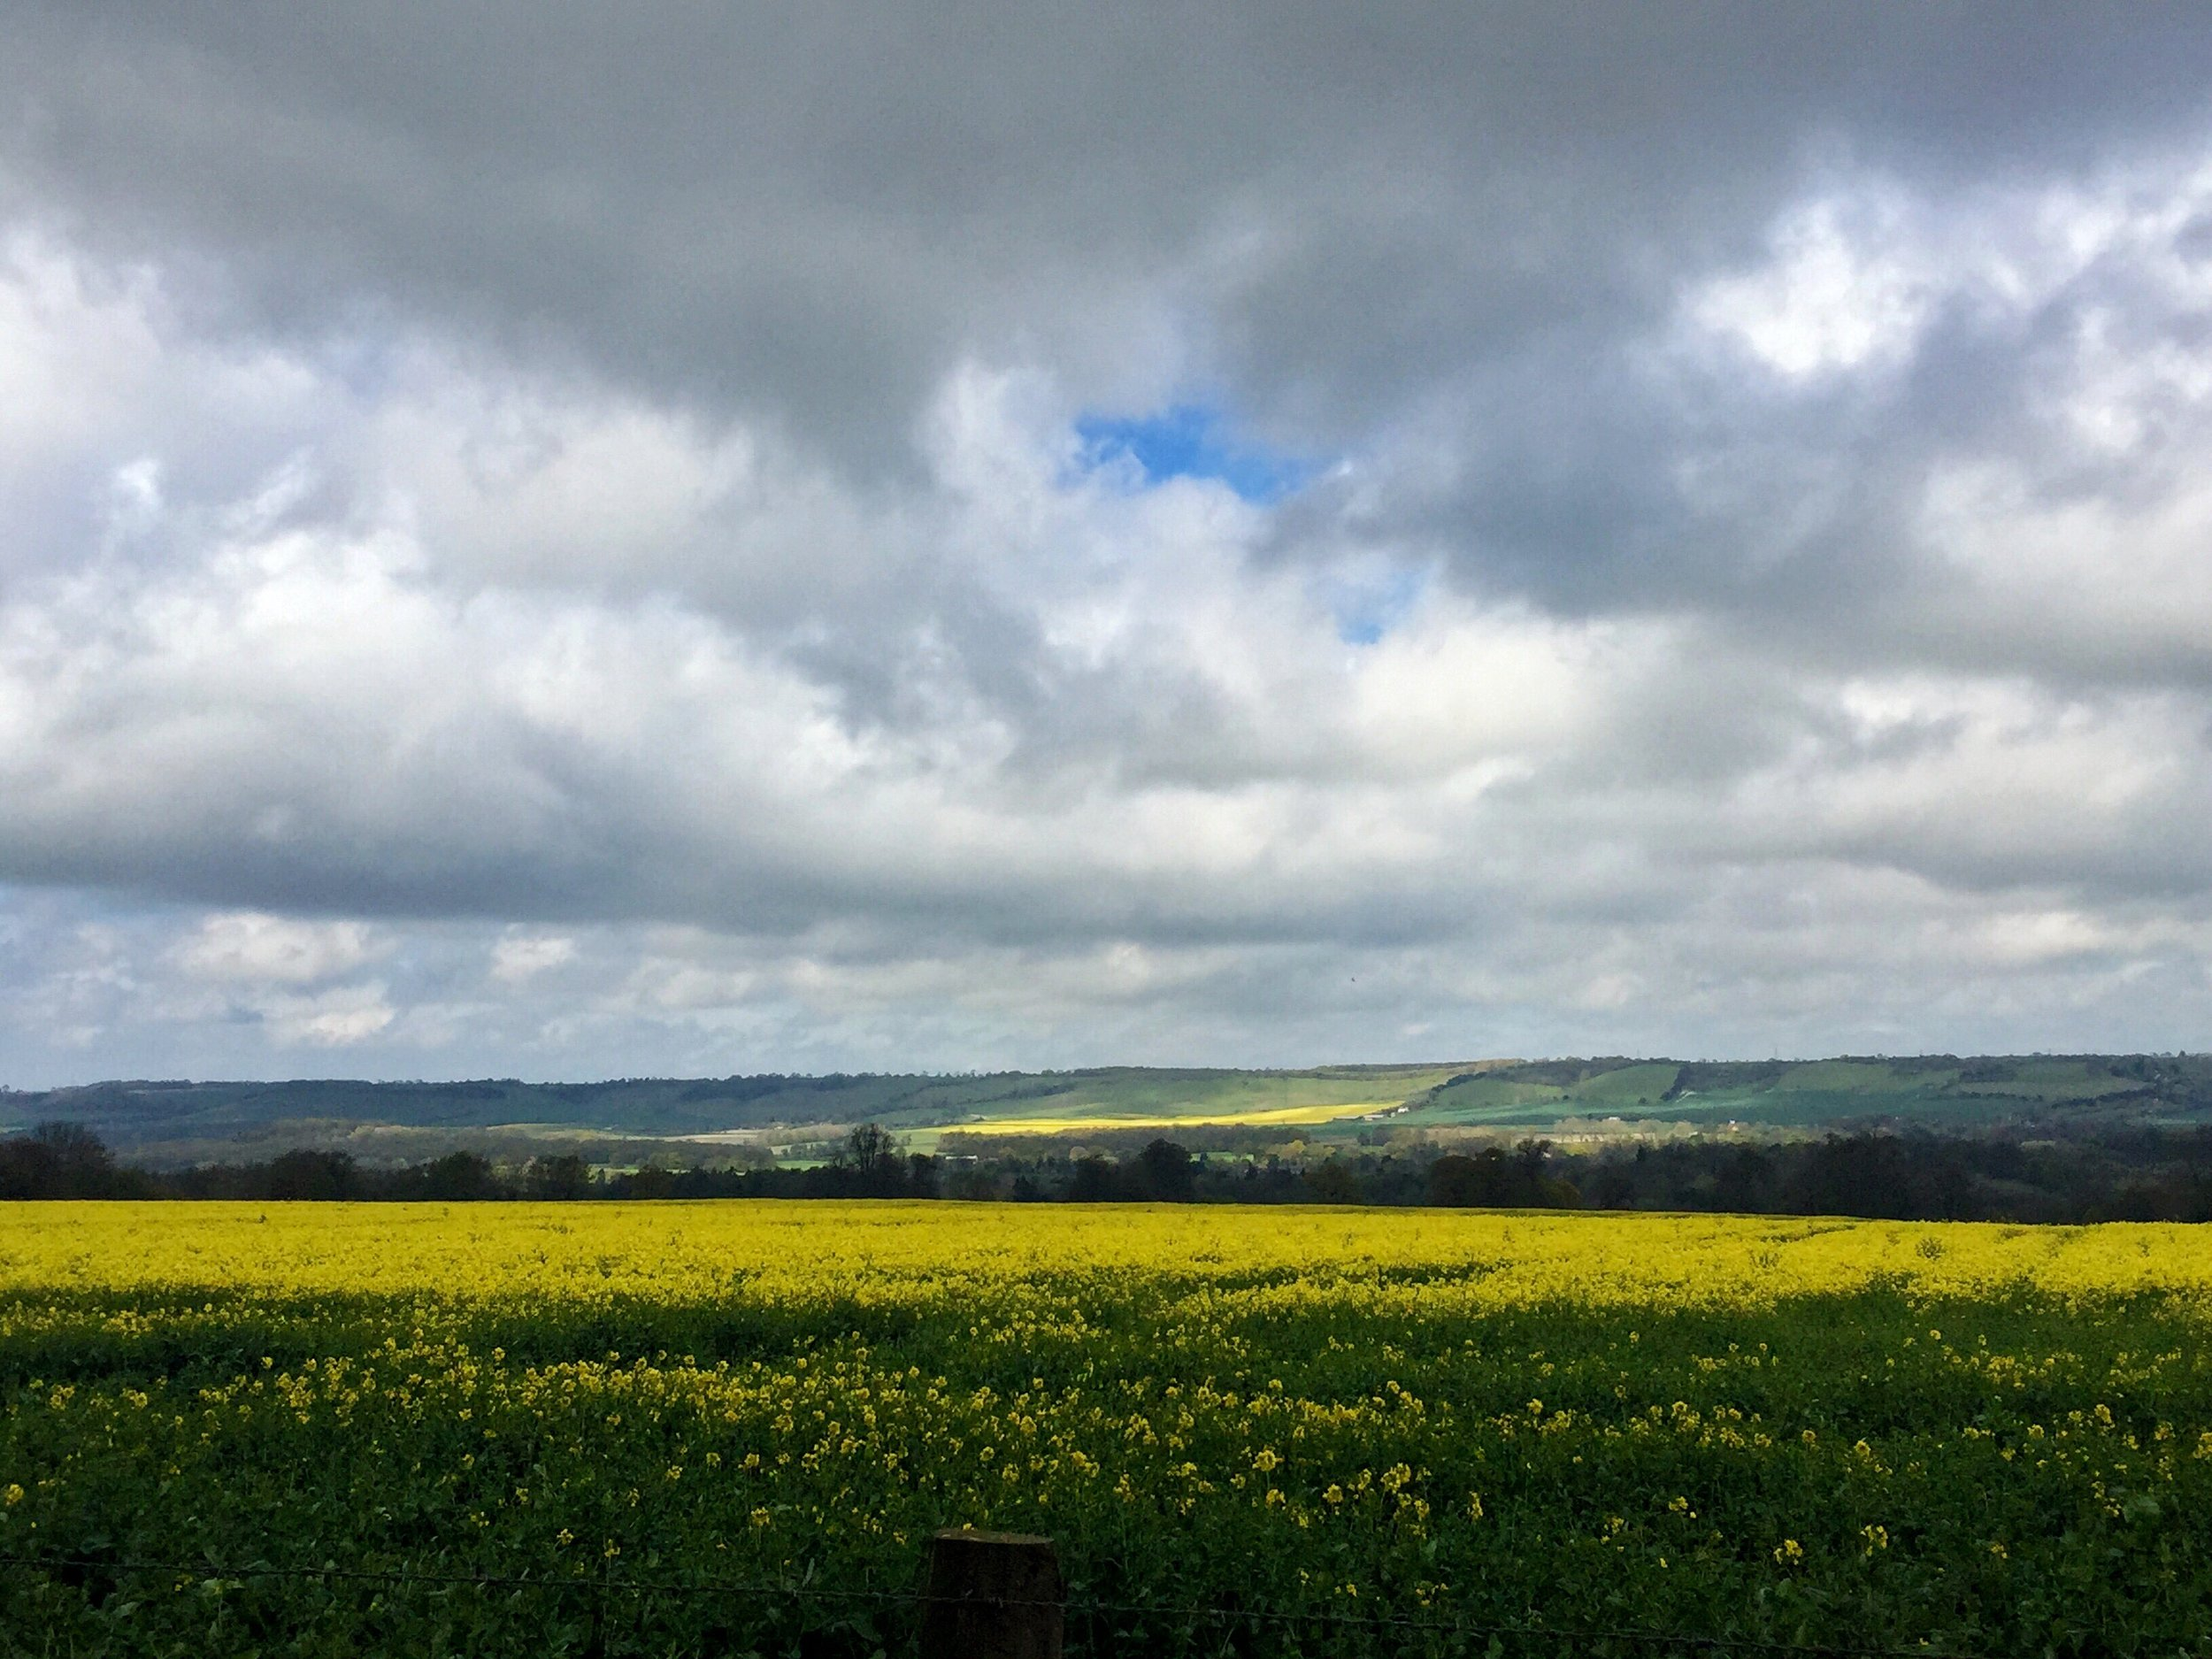 Rolling hills and rapeseed fields in the countryside